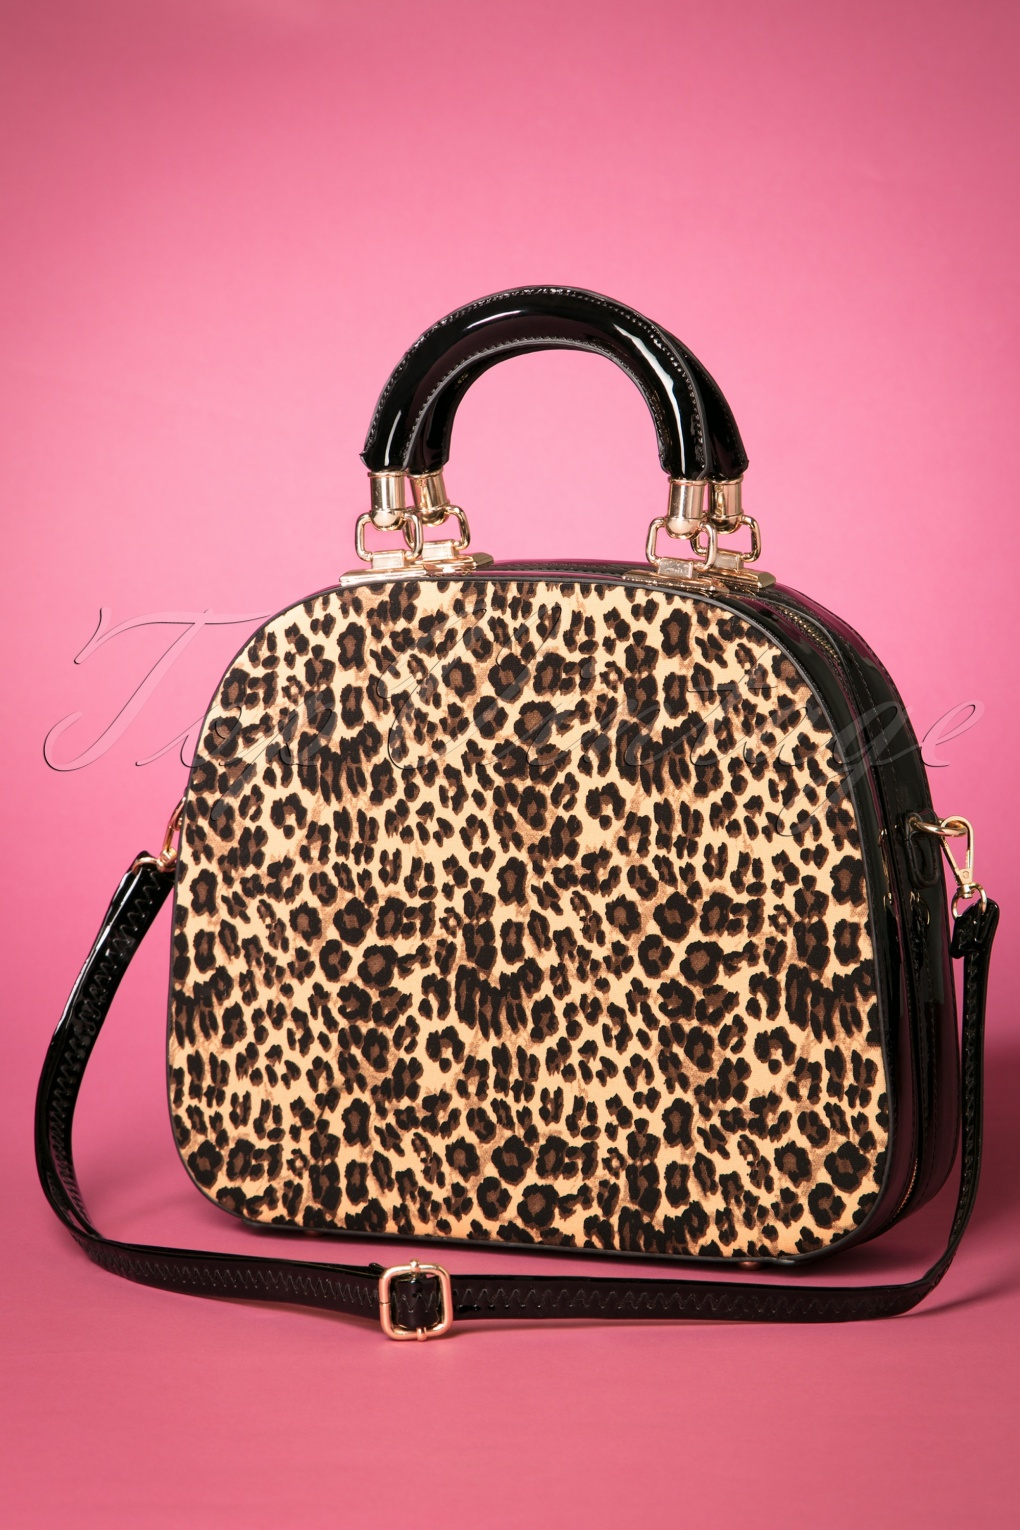 Vintage & Retro Handbags, Purses, Wallets, Bags 50s Leopard Handbag in Black £44.36 AT vintagedancer.com